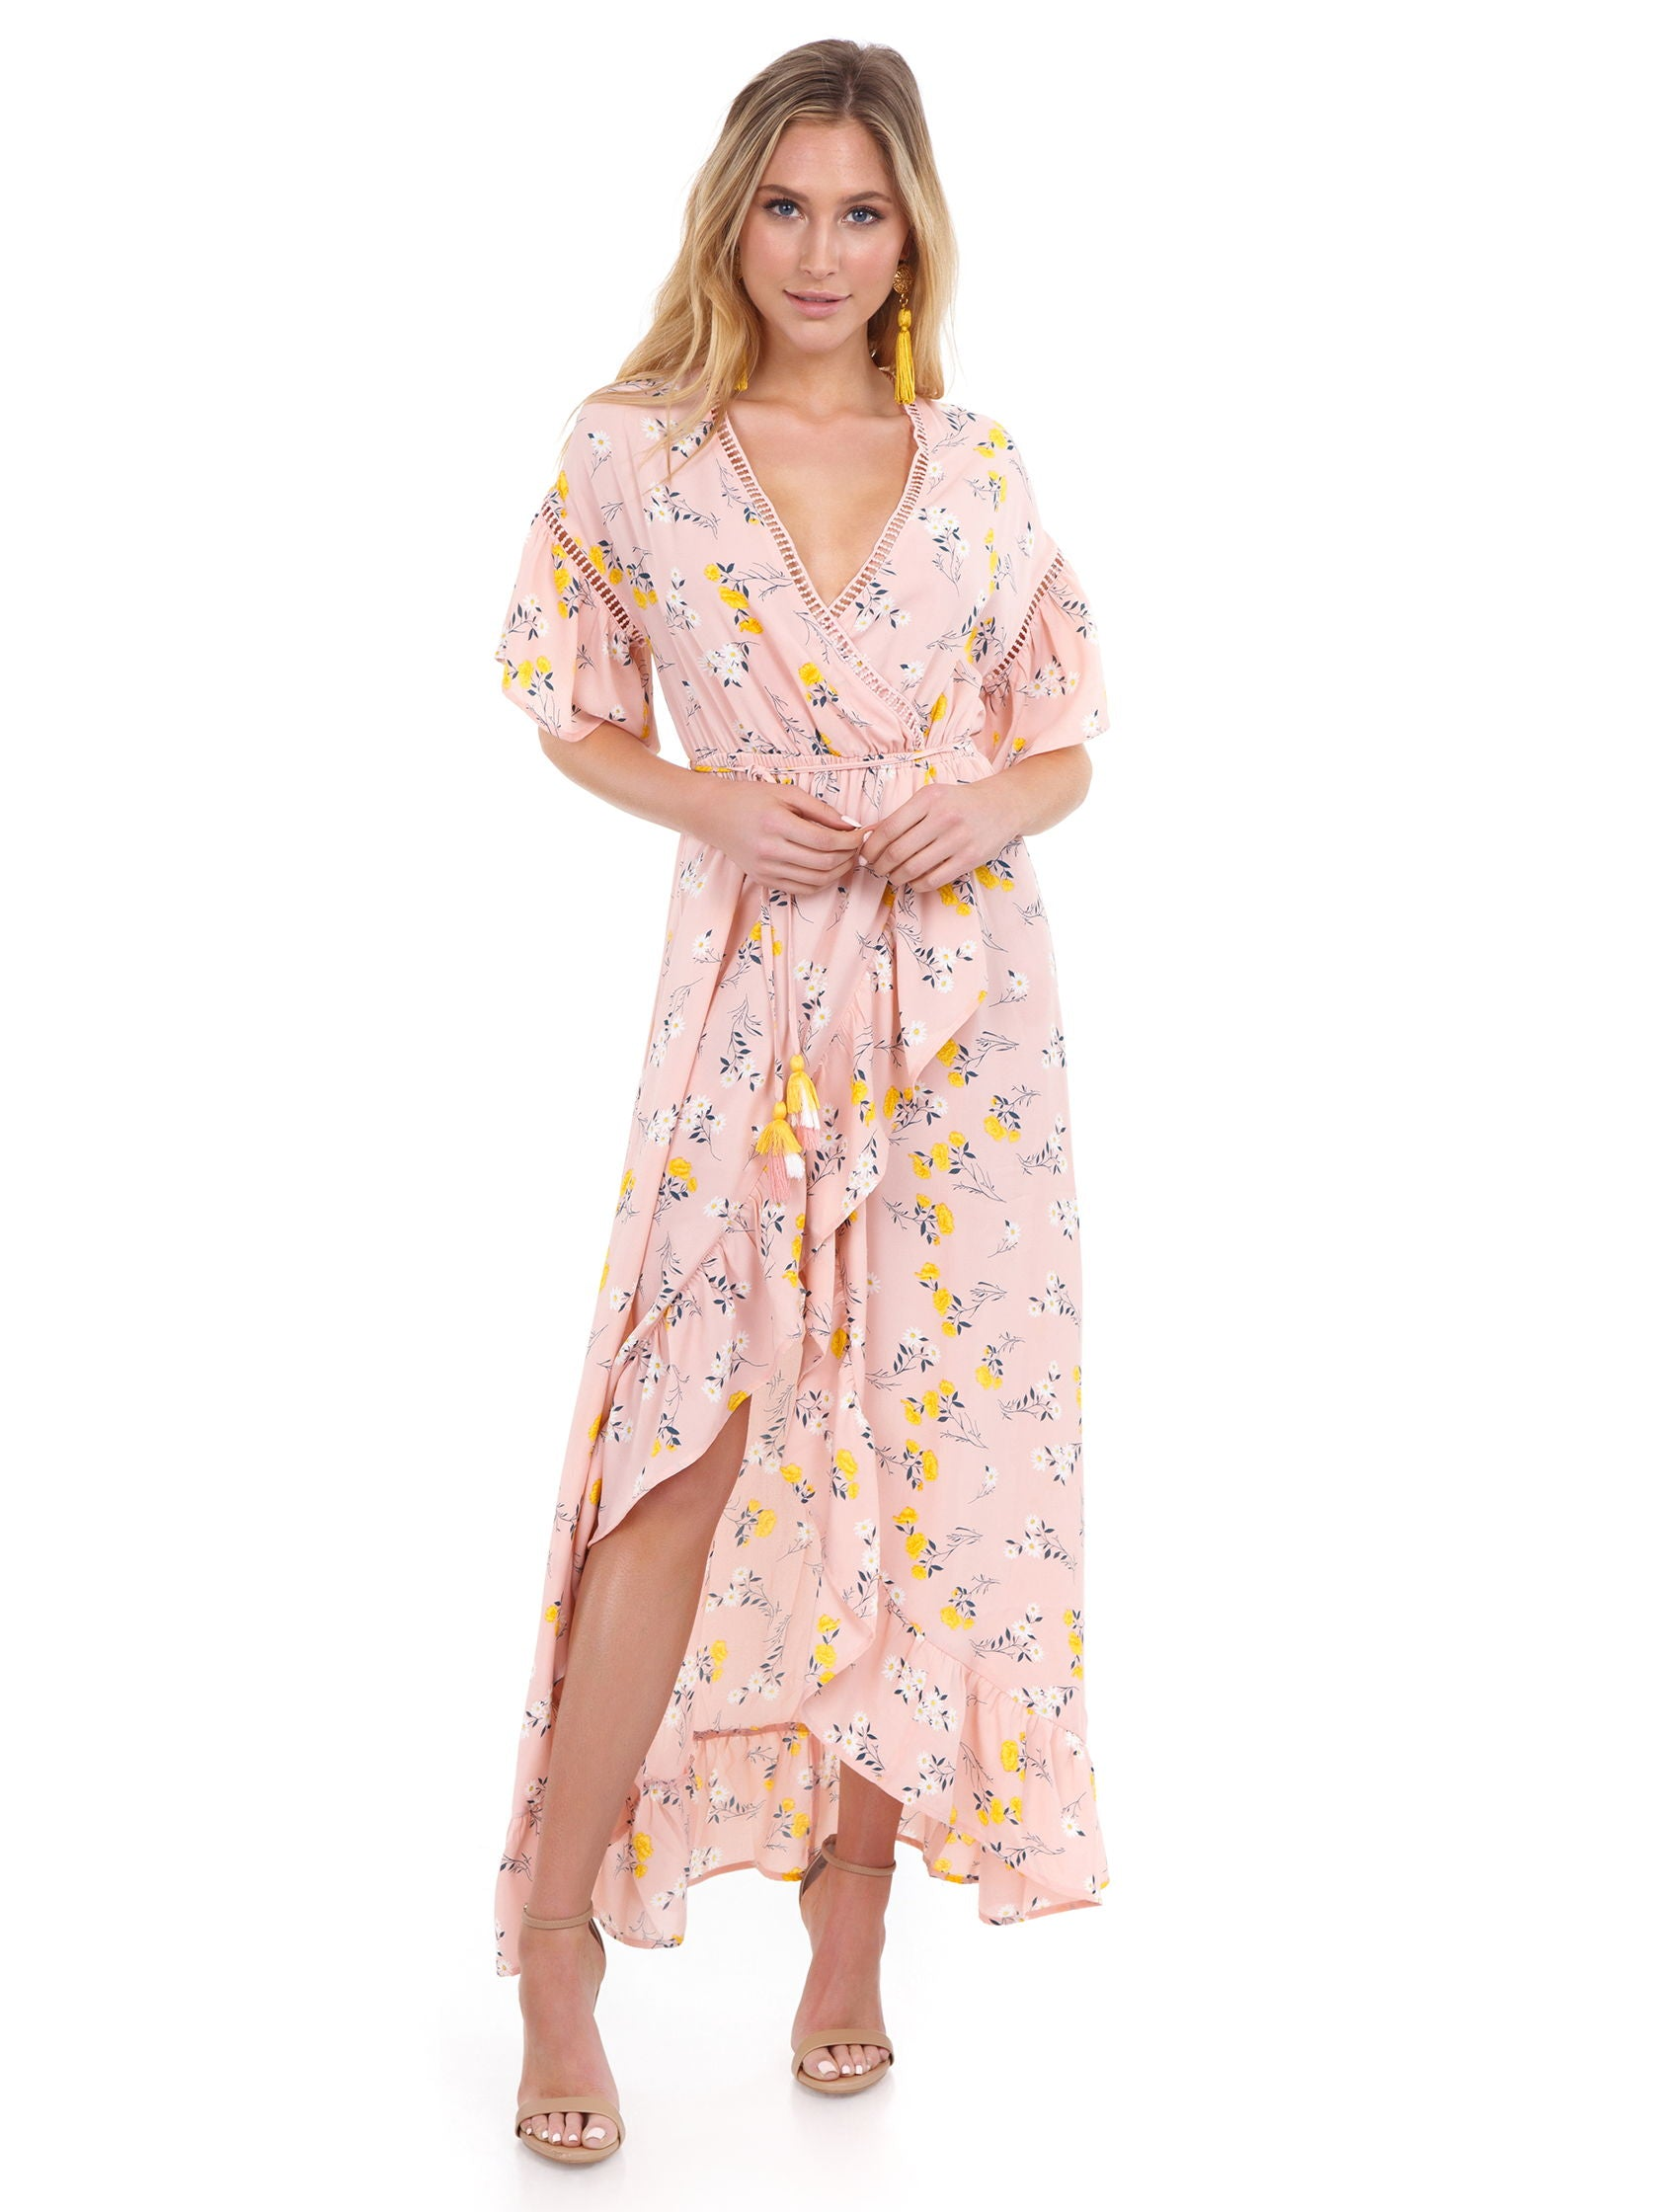 Girl outfit in a dress rental from Moon River called Ruffle Sleeve Wrap Dress